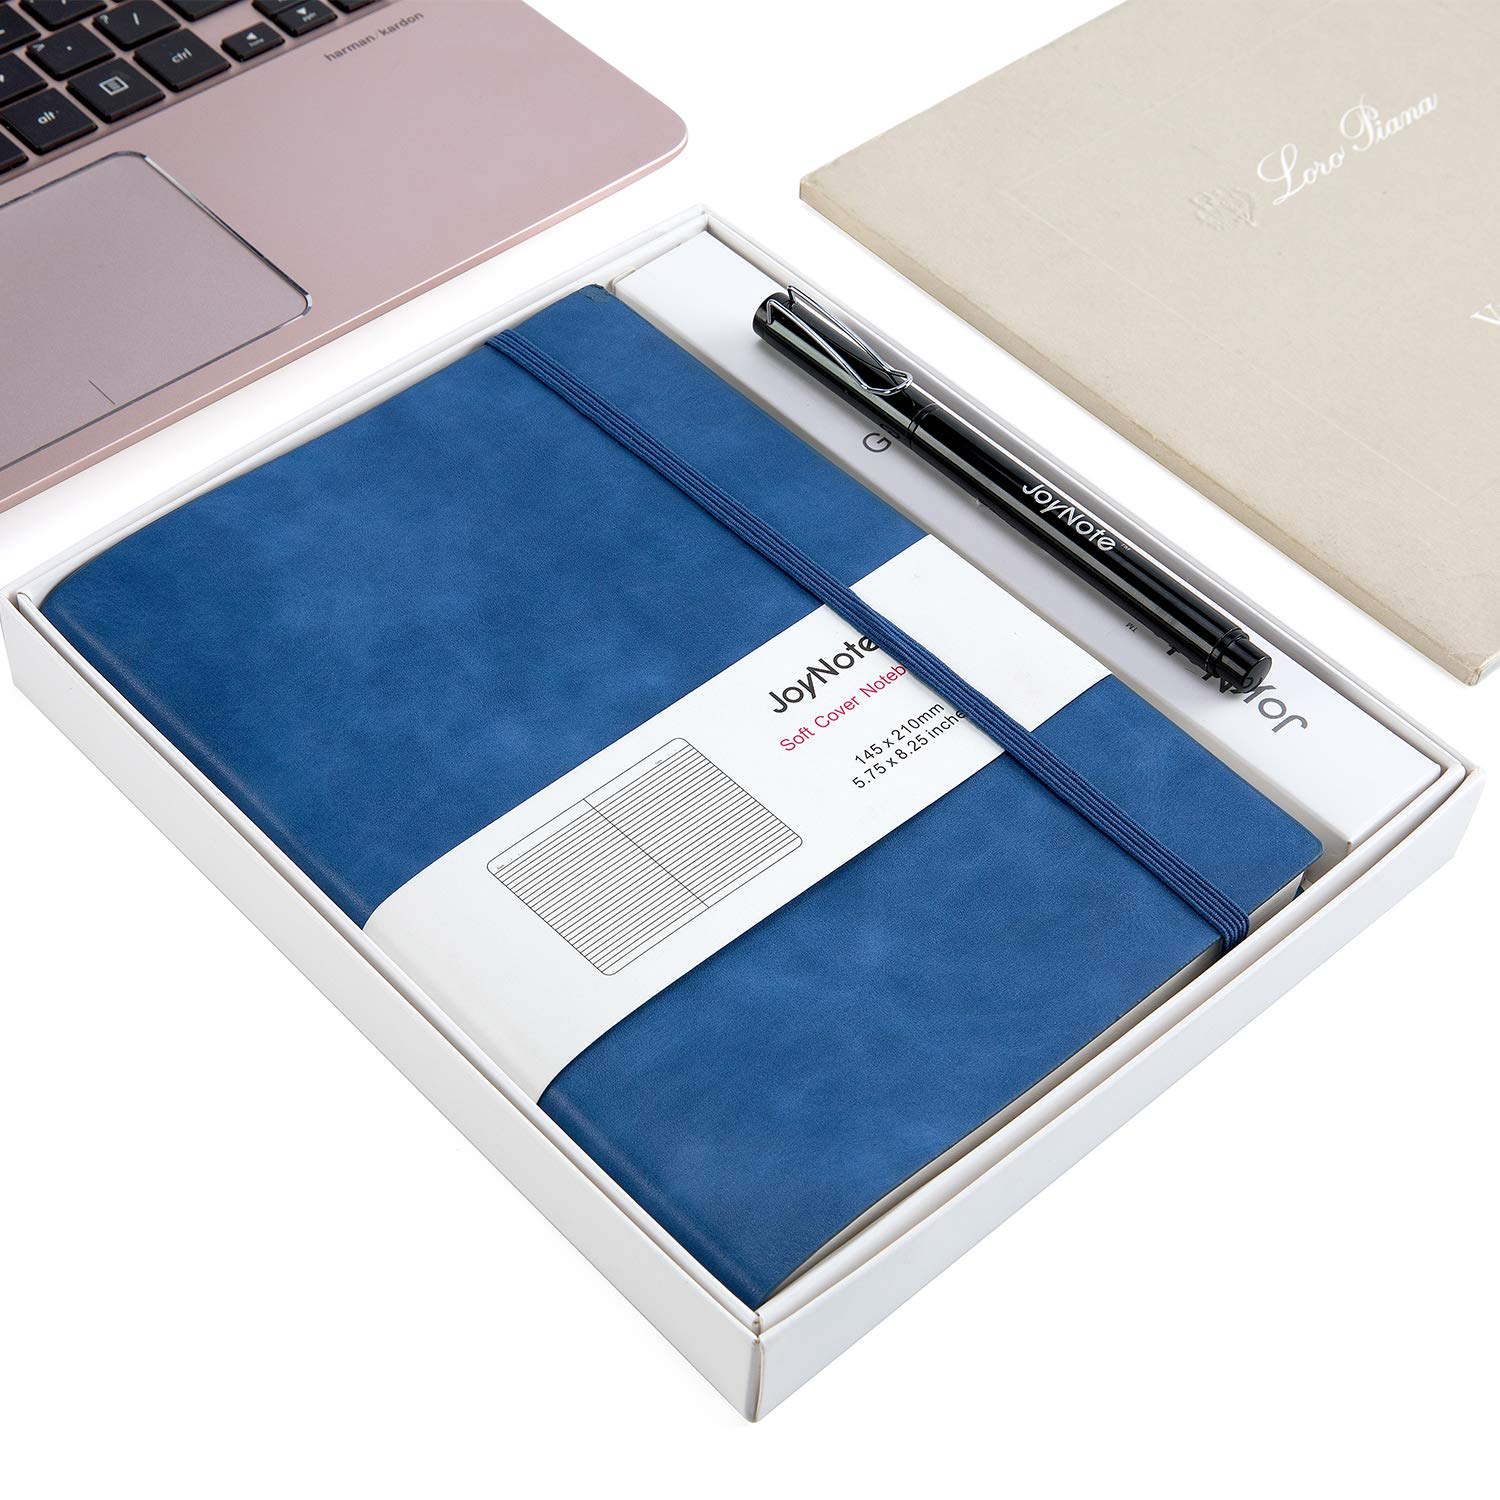 JoyNote A5 Classic Notebook Journal, Ruled Notebook with Pen Holder, Thick Paper Businees Writing Journal, 96 Sheets/192 Pages, 5.75 x 8.25 inches, Blue